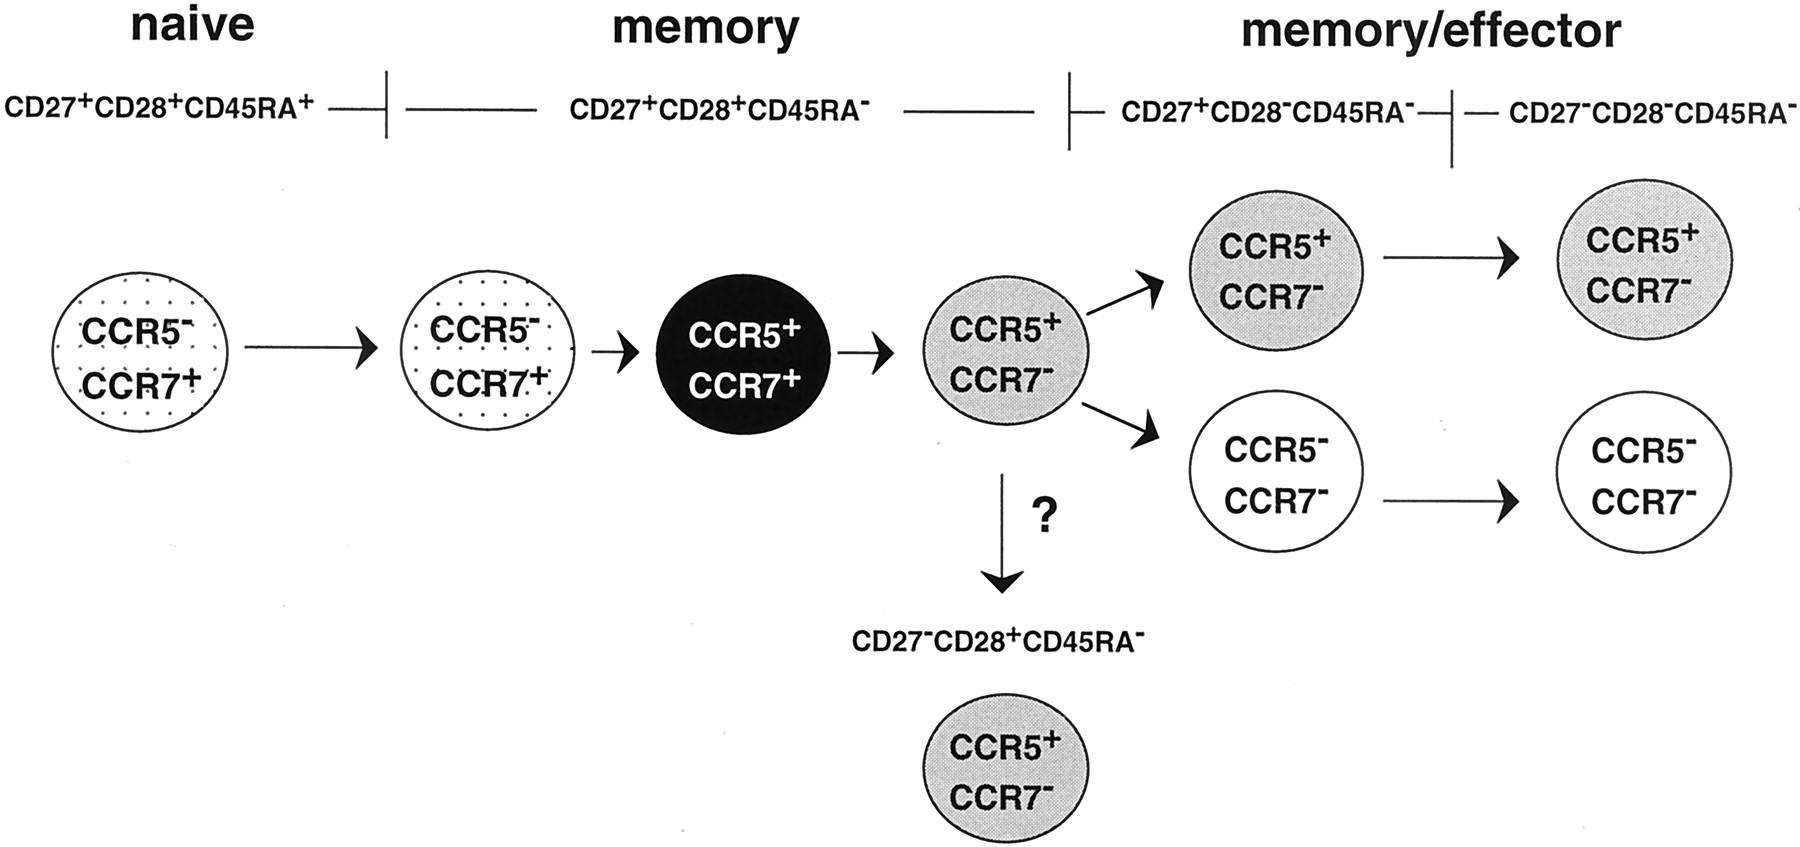 cd8 effector and memory t cells differentiation Tim-3 engagement promotes effector memory t cell differentiation of human antigen-specific cd8 t cells by activating mtorc1.